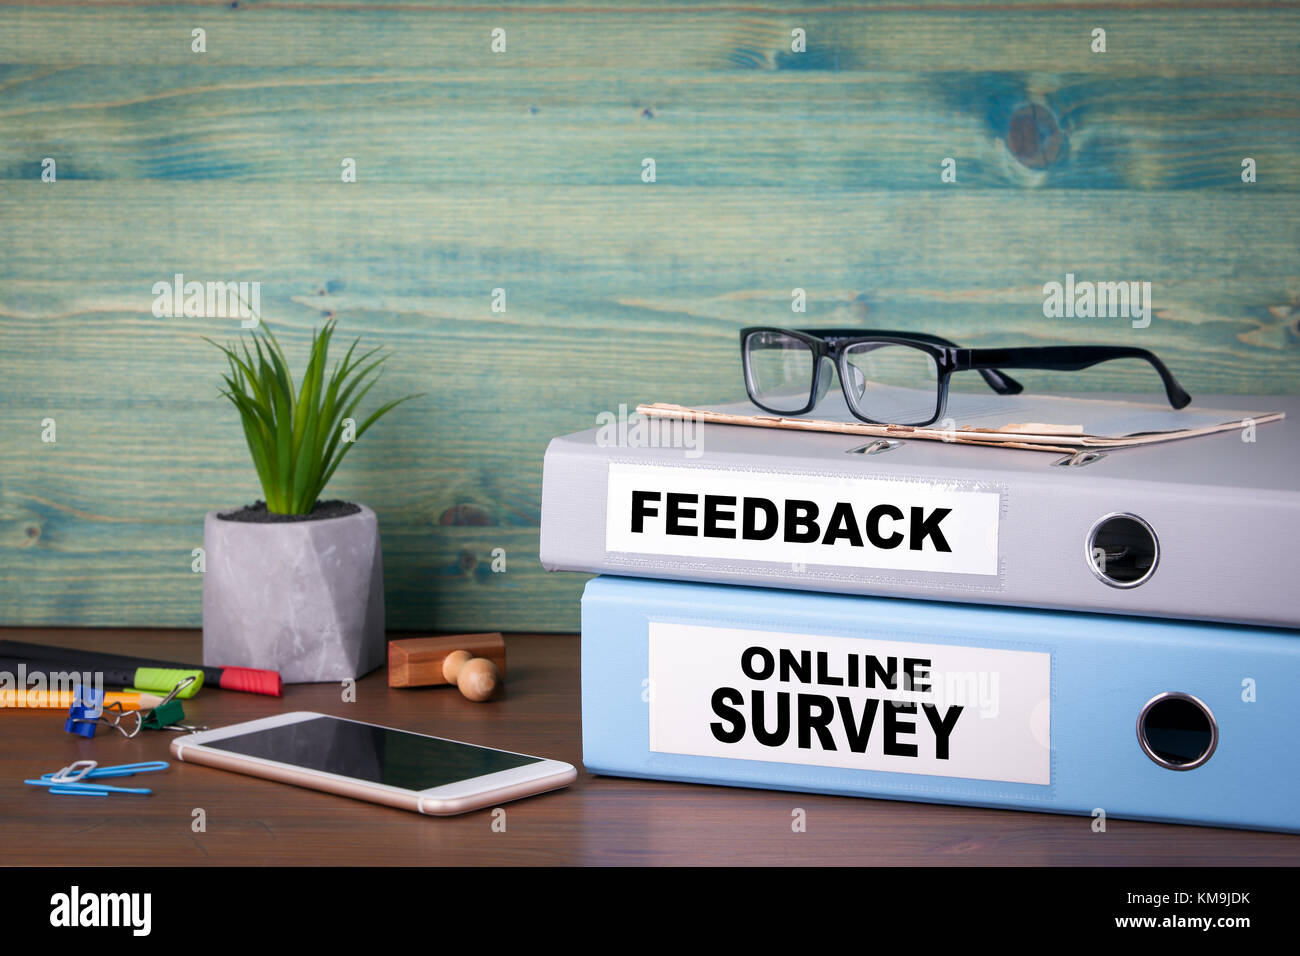 online survey and feedback. Successful business, advertising and social networking information - Stock Image